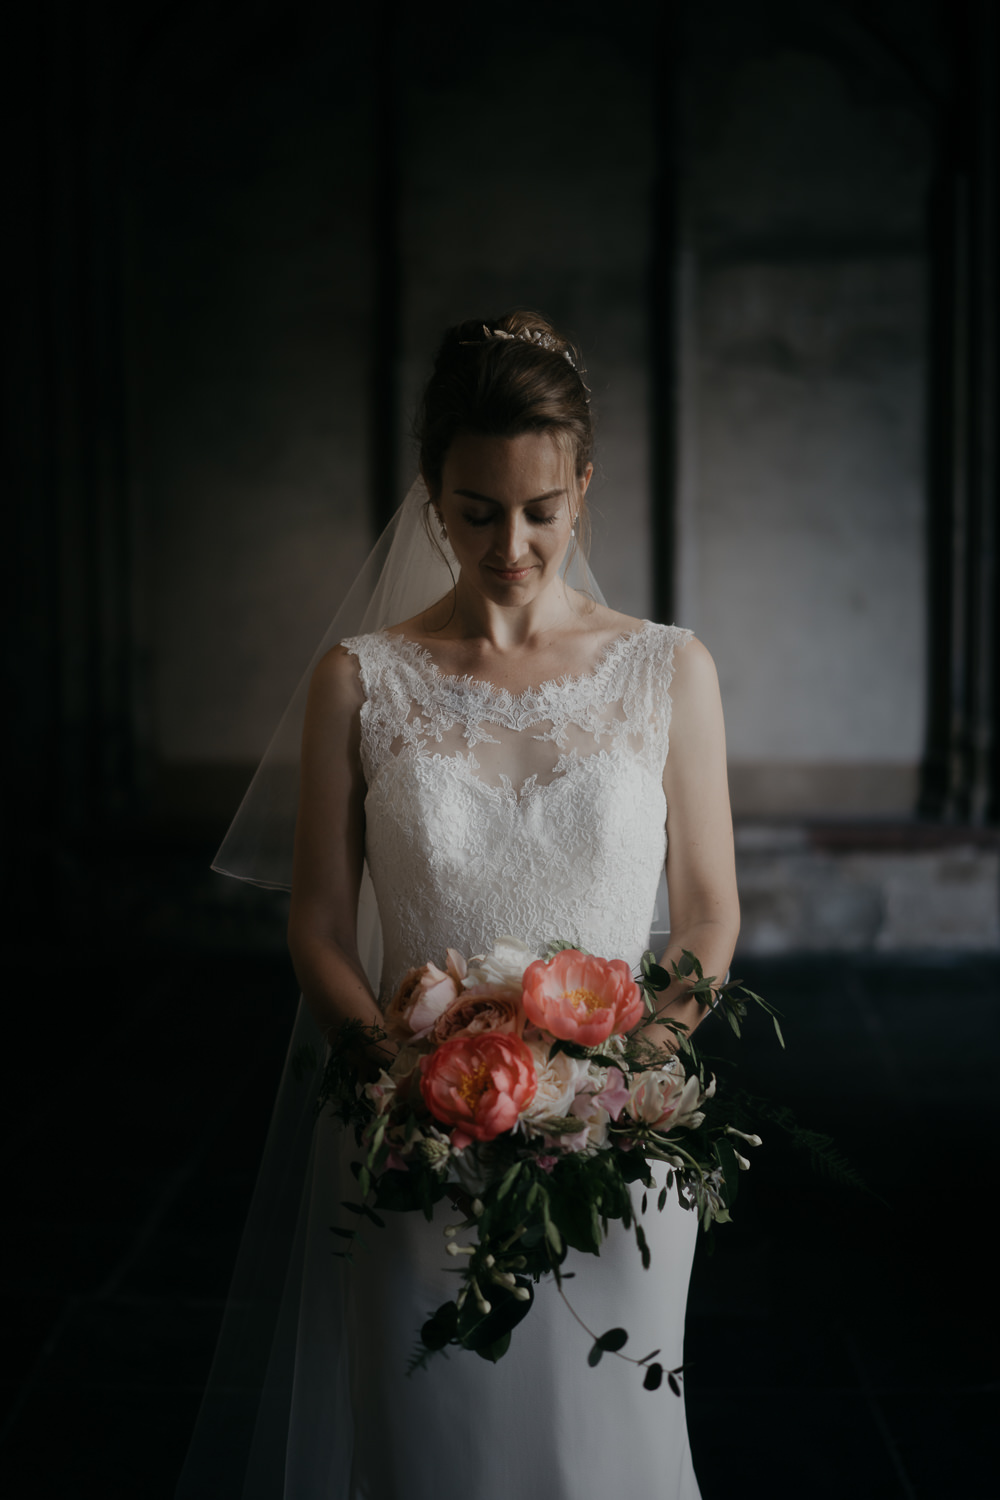 bridal portrait in the dom tower utrecht by mark hadden amsterdam wedding photographer